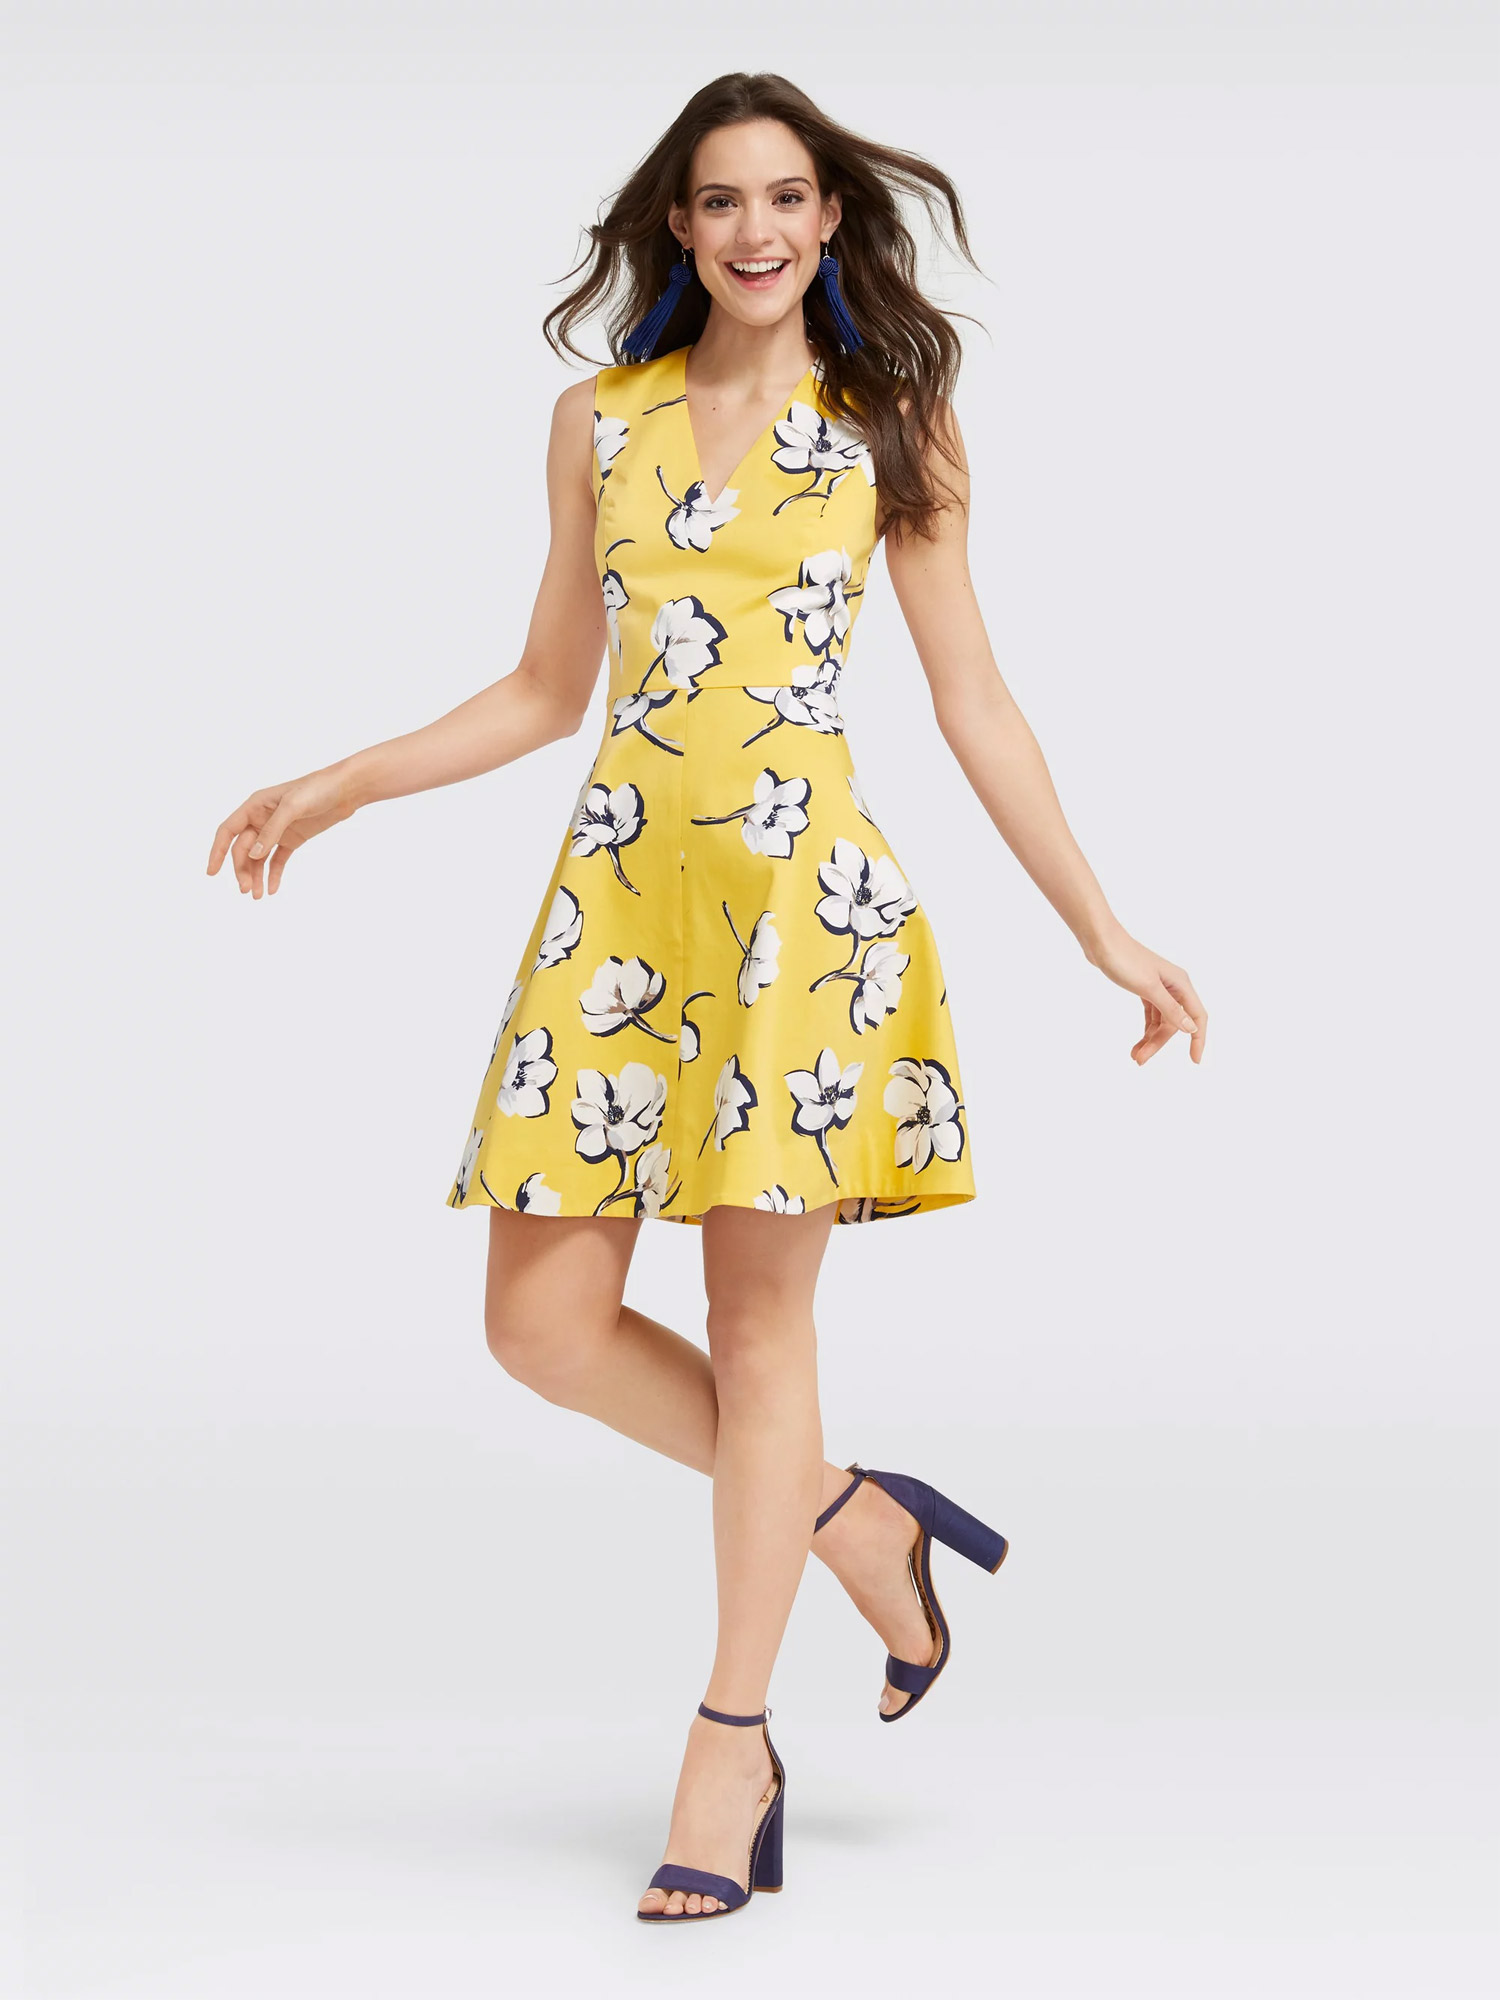 Top 5 Summer Dresses For 2018